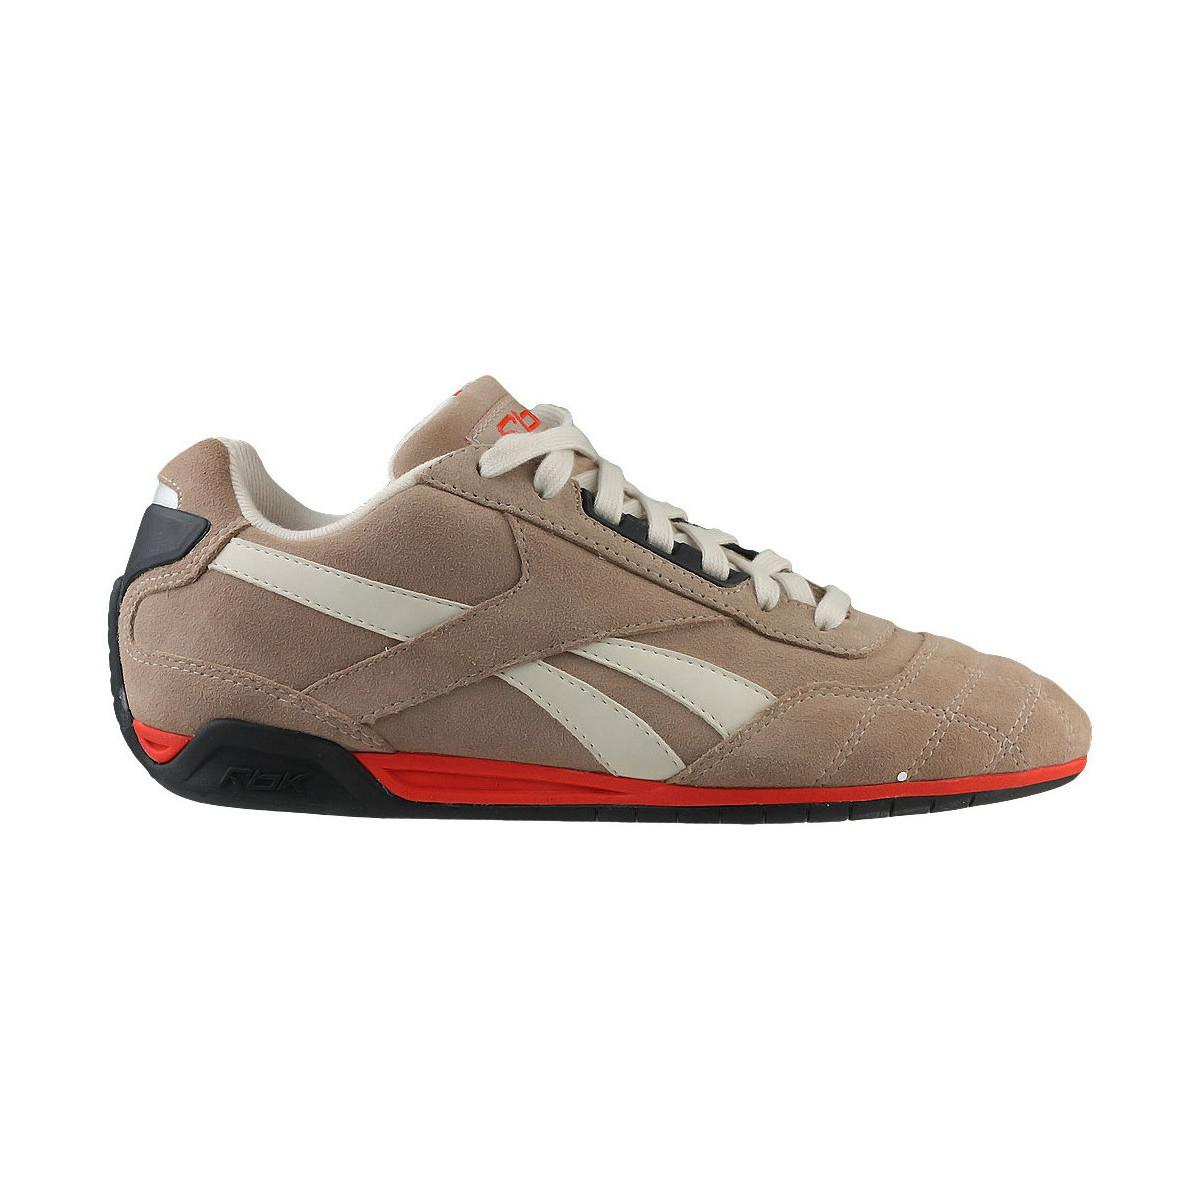 Reebok Velocera Women's Shoes (trainers) In Beige in Natural